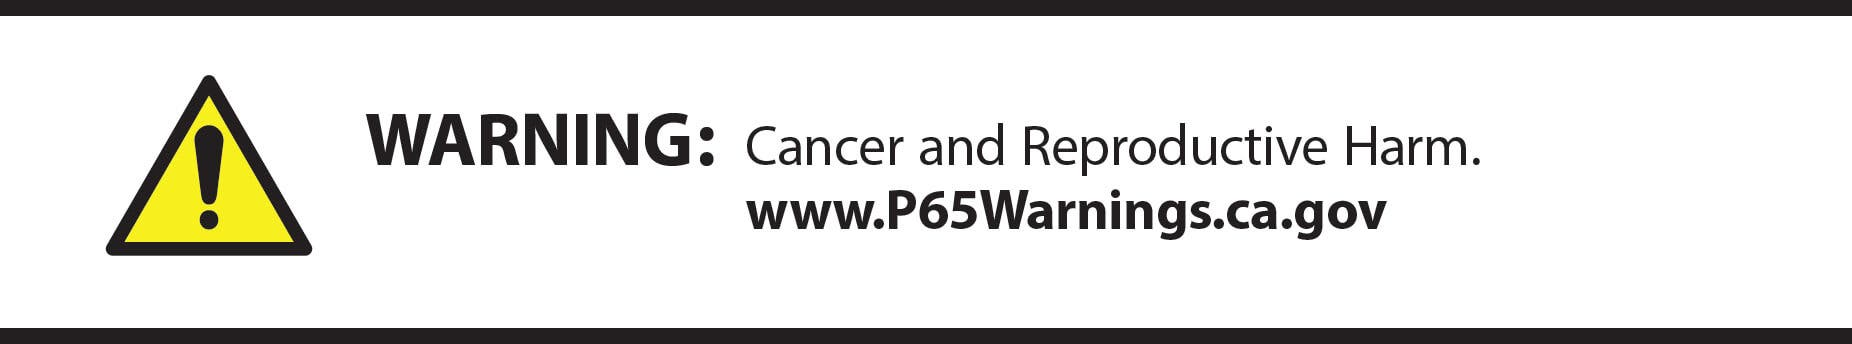 Warning: This product can expose you to a chemical, which can cause cancer and reproductive harm. For more information go to www.p65warning.ca.gov